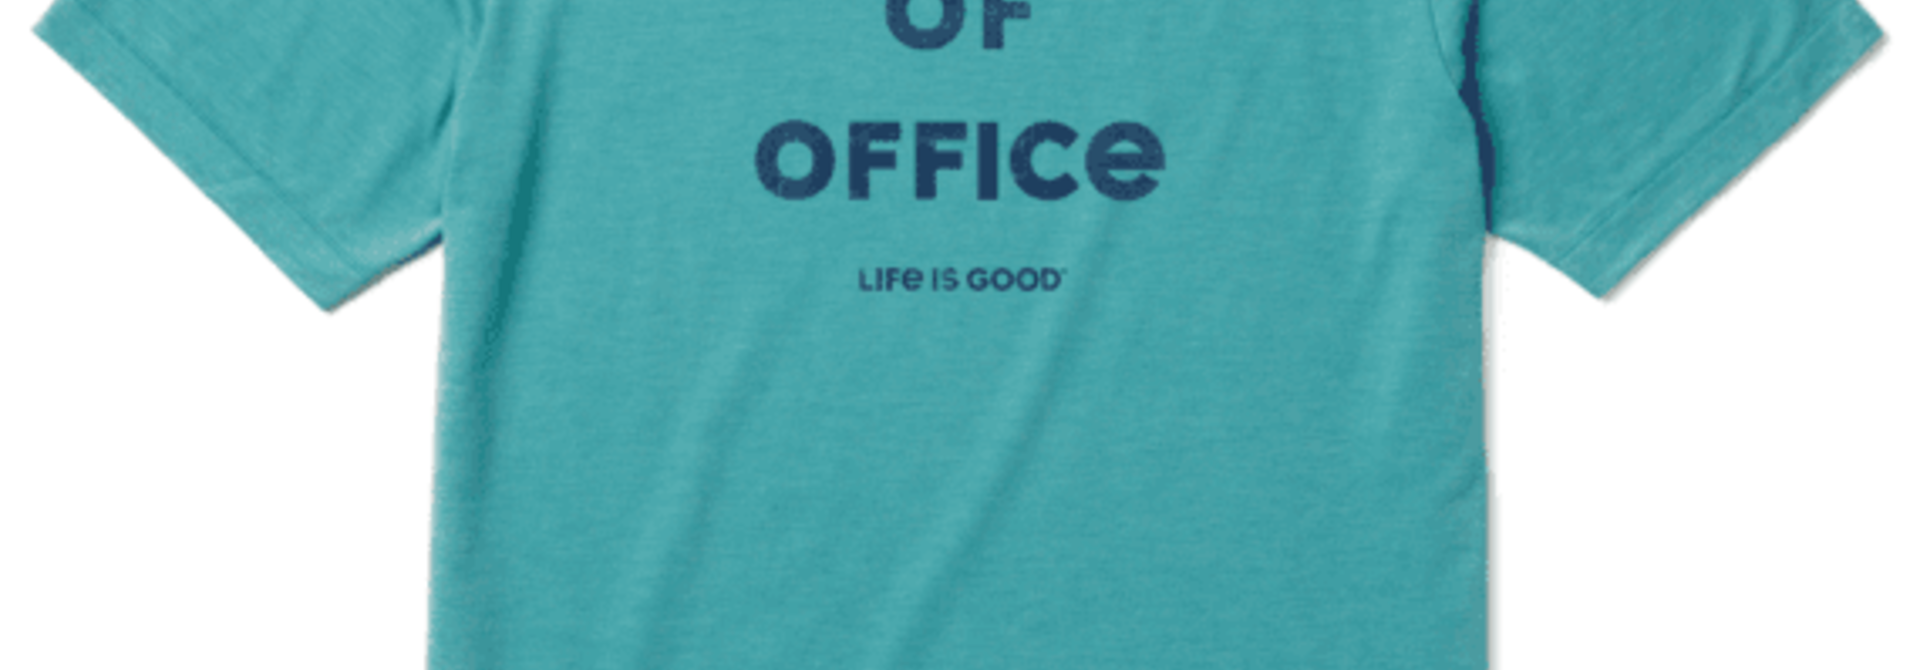 Out Of Office T-shirt Cool Life Is Good